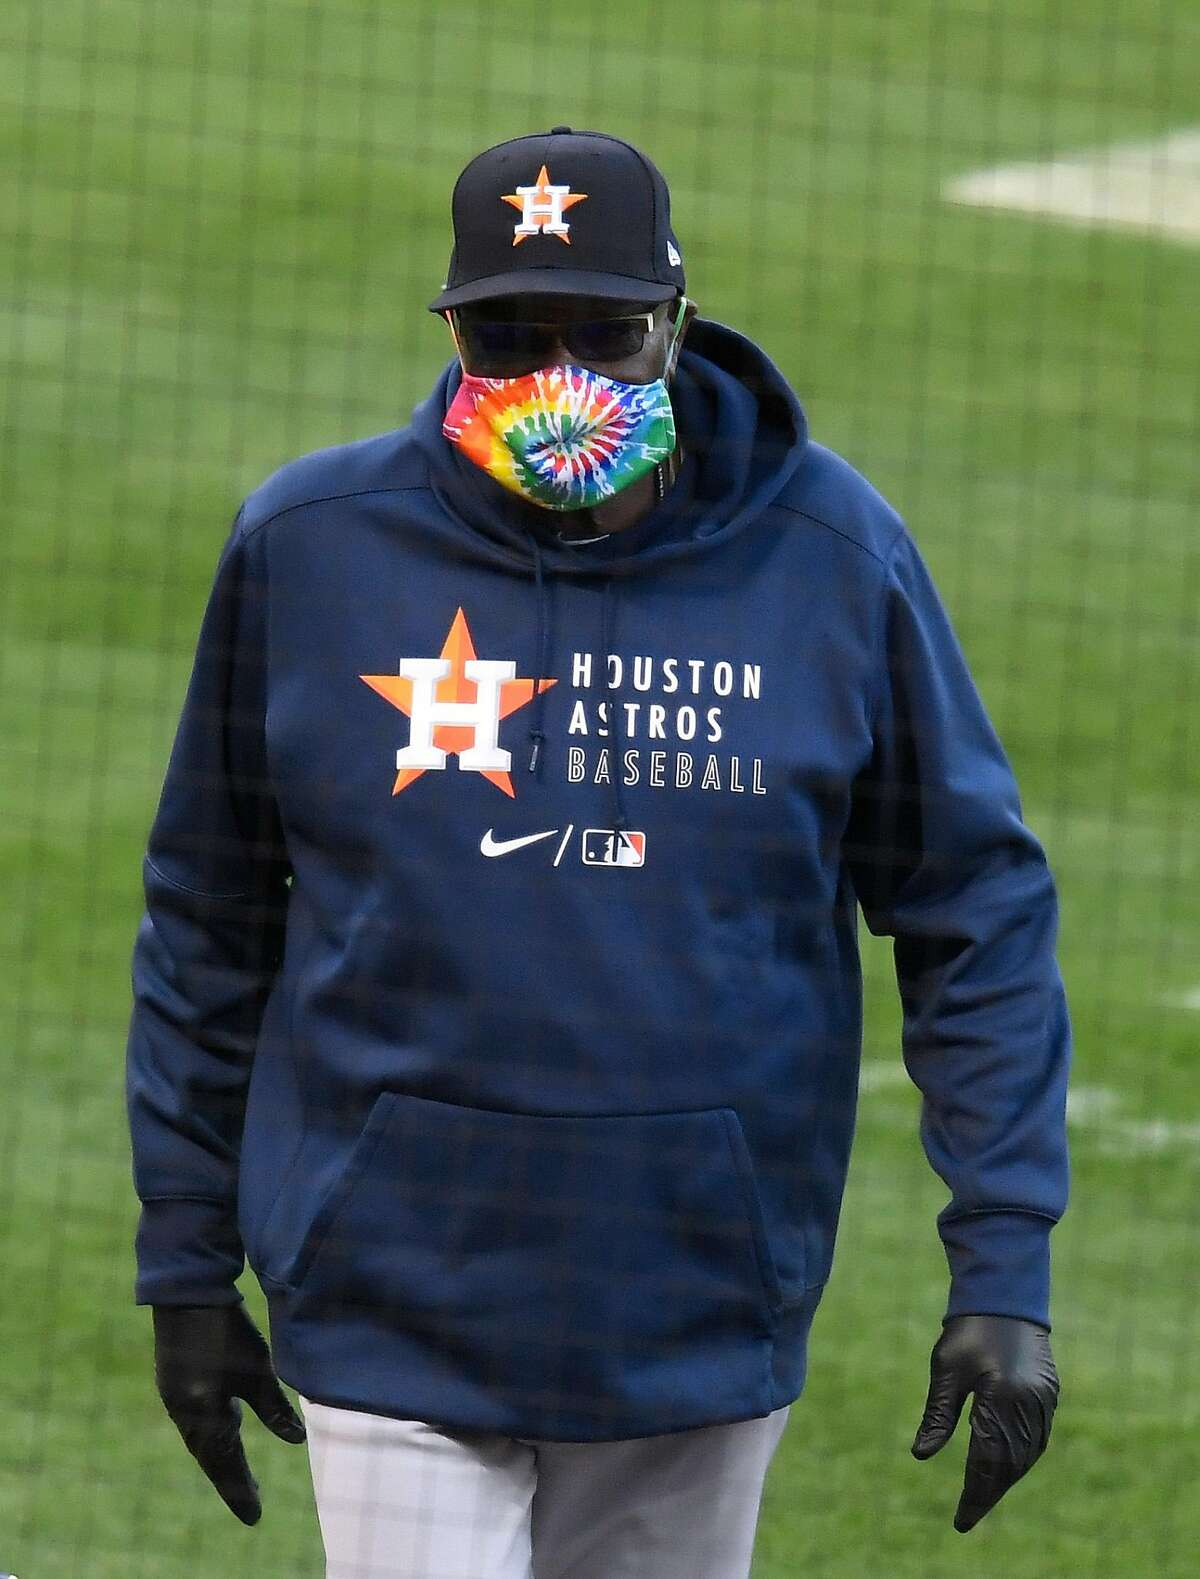 ANAHEIM, CALIFORNIA - APRIL 05: Manager Dusty Baker of the Houston Astros walks back to the dugout before the game against the Los Angeles Angels at Angel Stadium of Anaheim on April 05, 2021 in Anaheim, California. (Photo by Harry How/Getty Images)